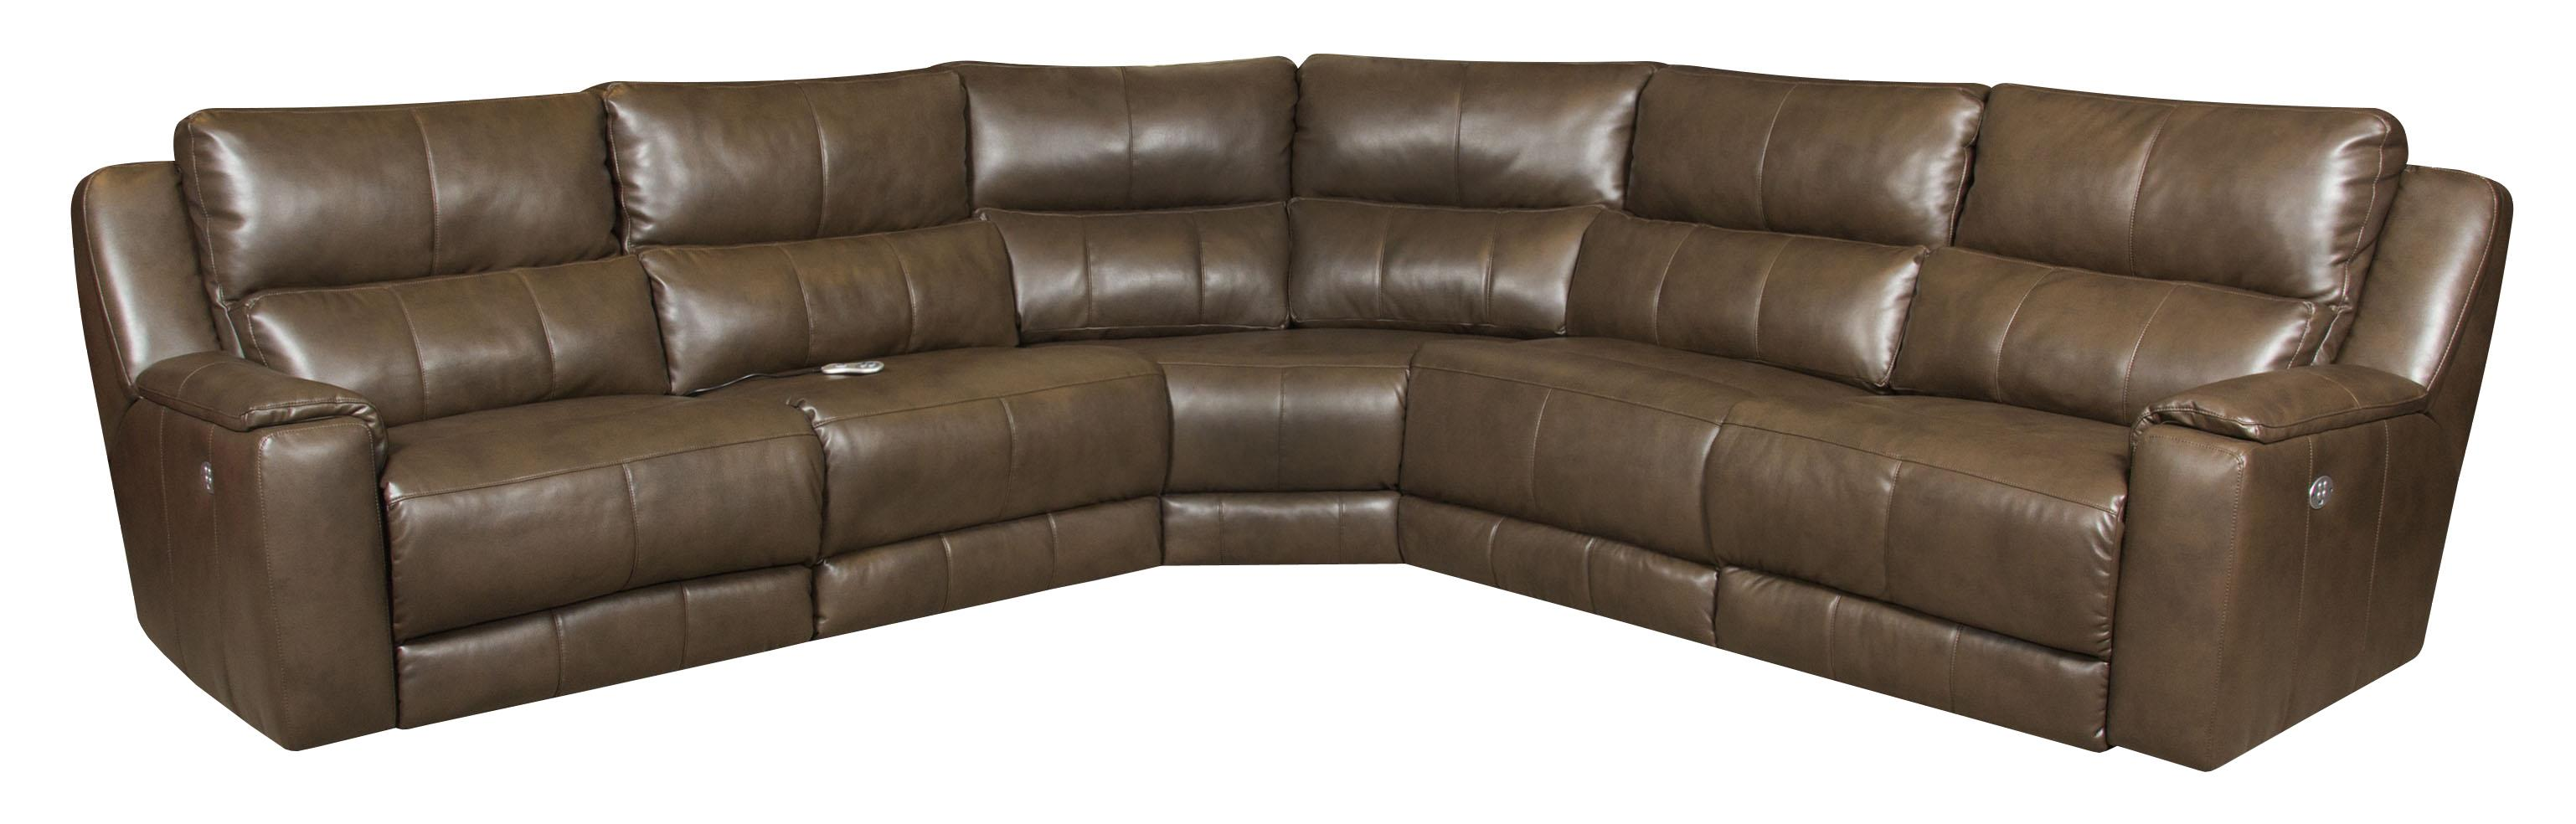 Reclining Sectional Sofa with 5 Seats and Power Headrests by